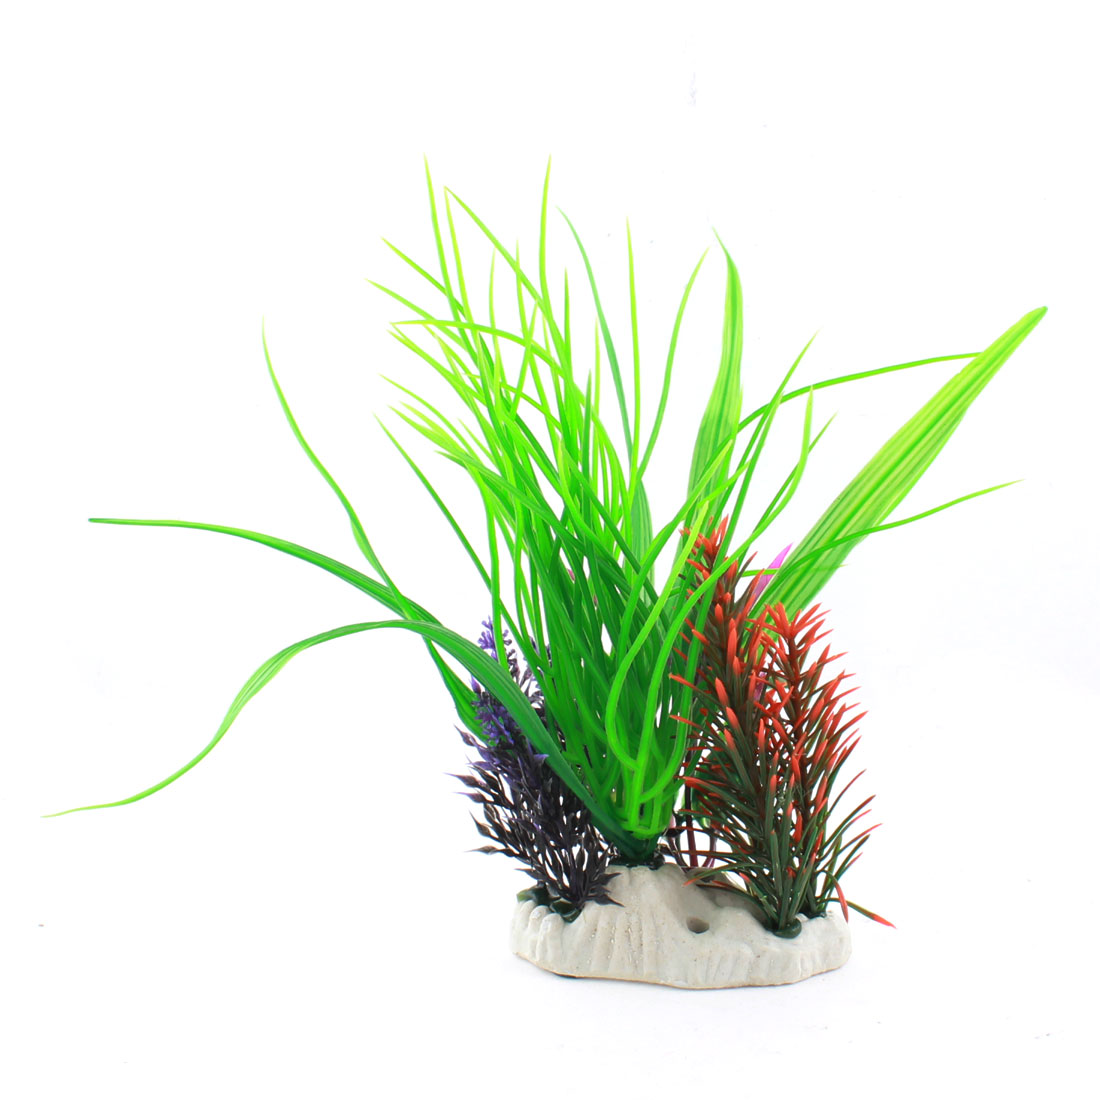 Fish Tank Multicolor Plastic Water Grasses Plants Decoration 23cm Height